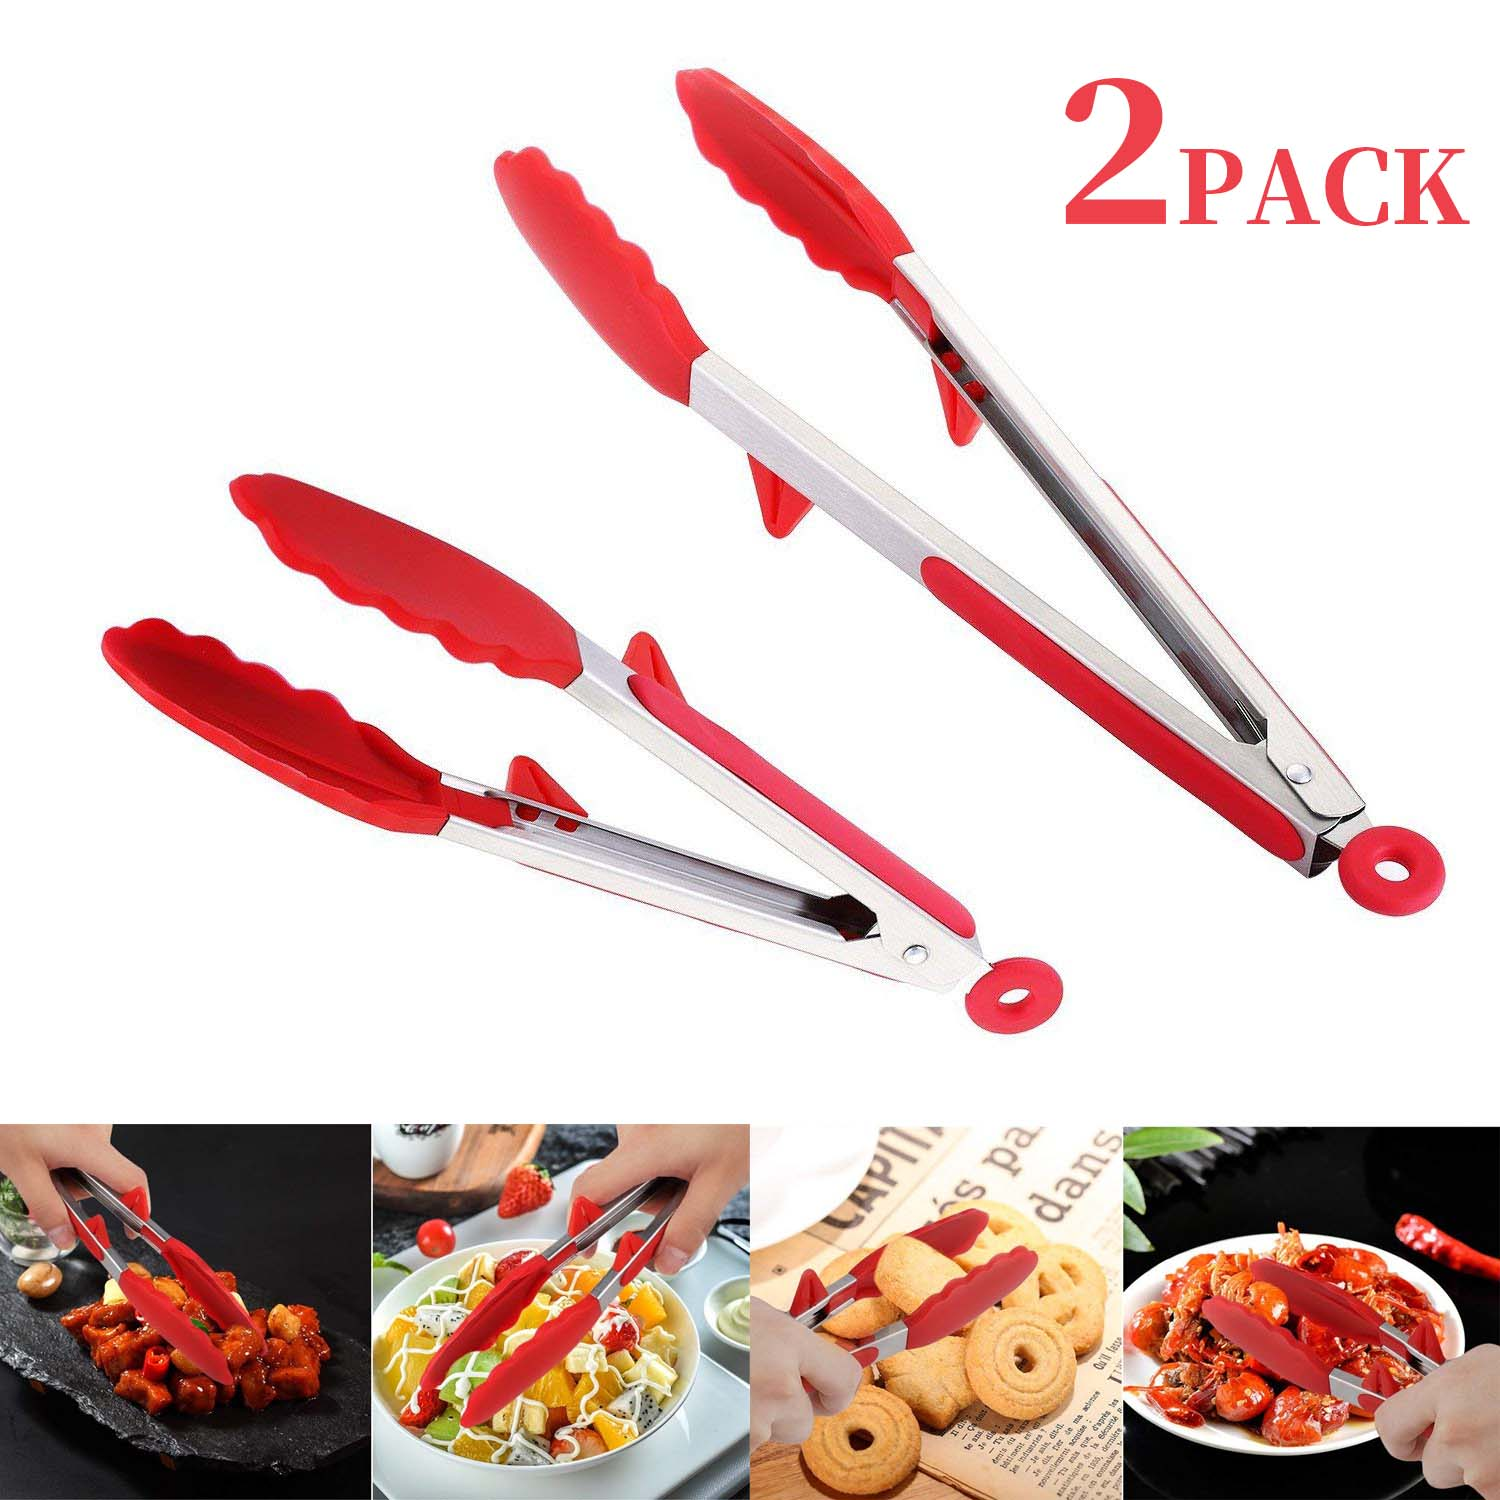 Kitchen Tongs with Silicone Tips, 2 Pack (9 & 12 Inch), Heavy Duty, Non-Stick Stainless Steel Silicone Tongs for Cooking